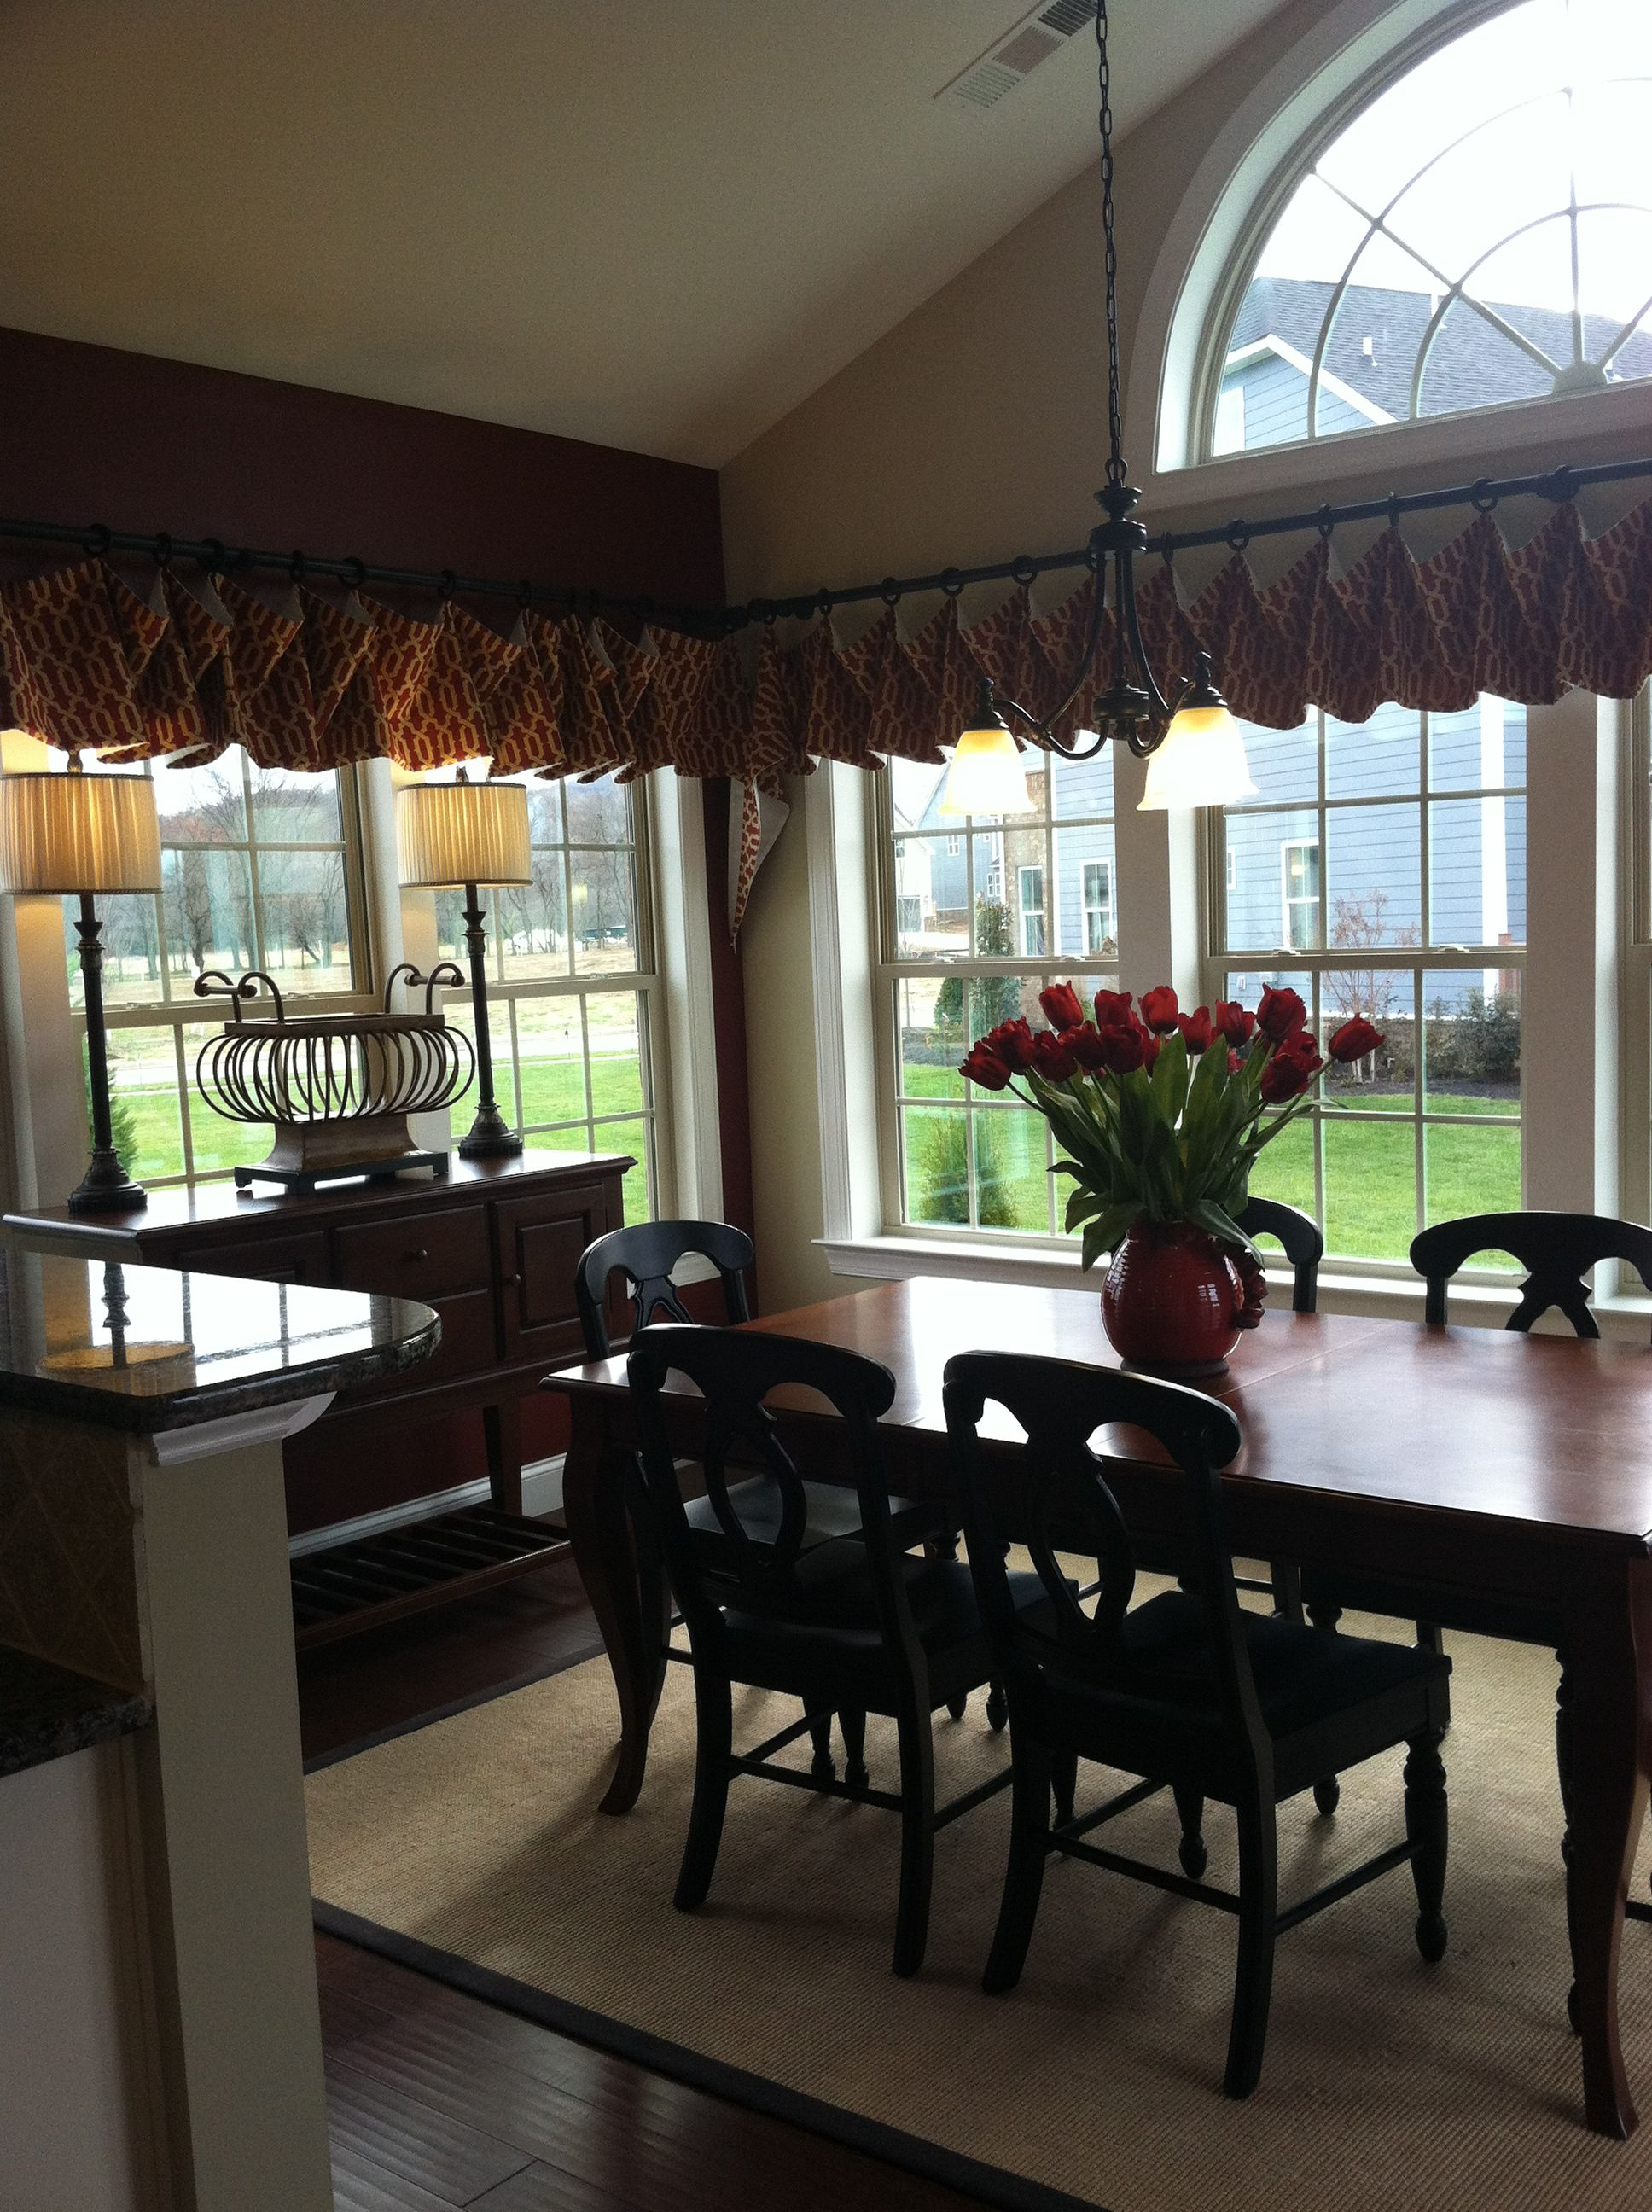 Creative Kitchen Window Treatments Hgtv Pictures Ideas: Morning Room In Model Home Stream Valley